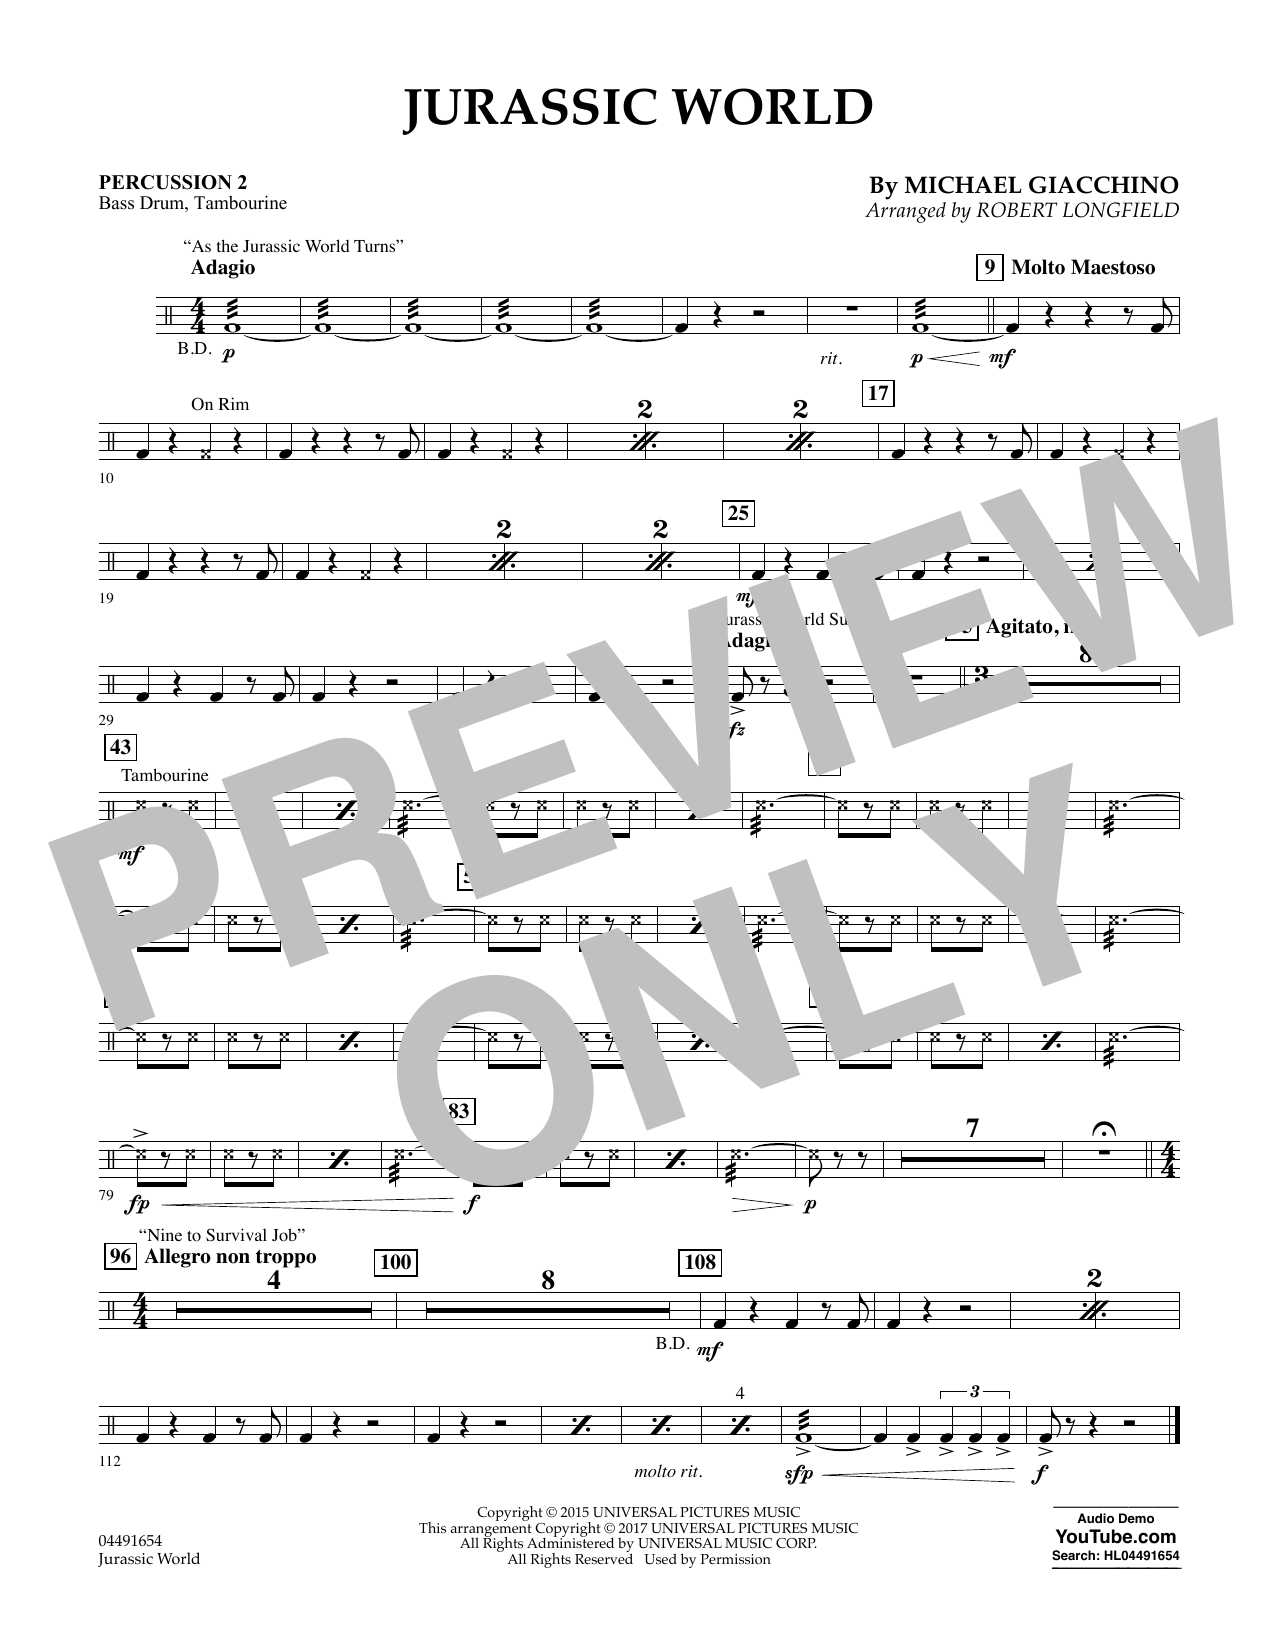 Robert Longfield Jurassic World - Percussion 2 sheet music preview music notes and score for Orchestra including 1 page(s)